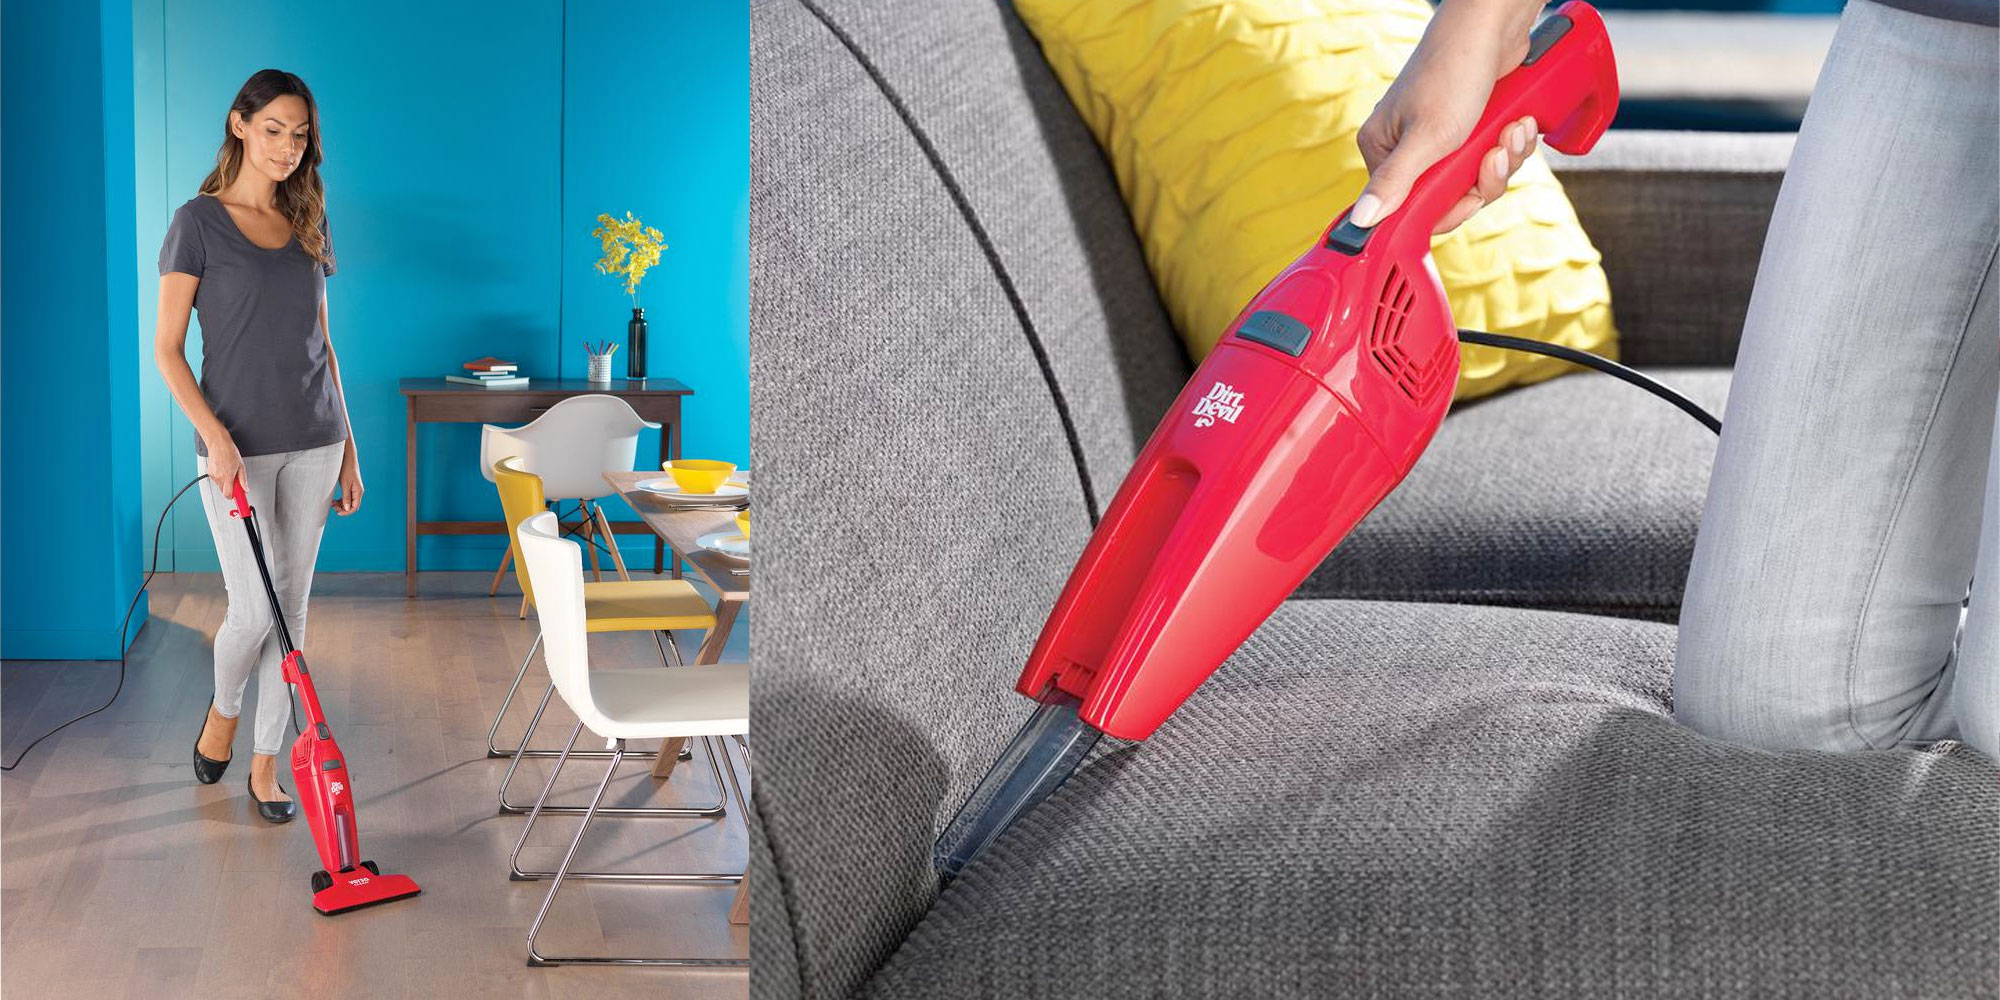 Dirt Devil's Versa Stick Vacuum offers a lightweight clean for just $10 shipped (50% off)